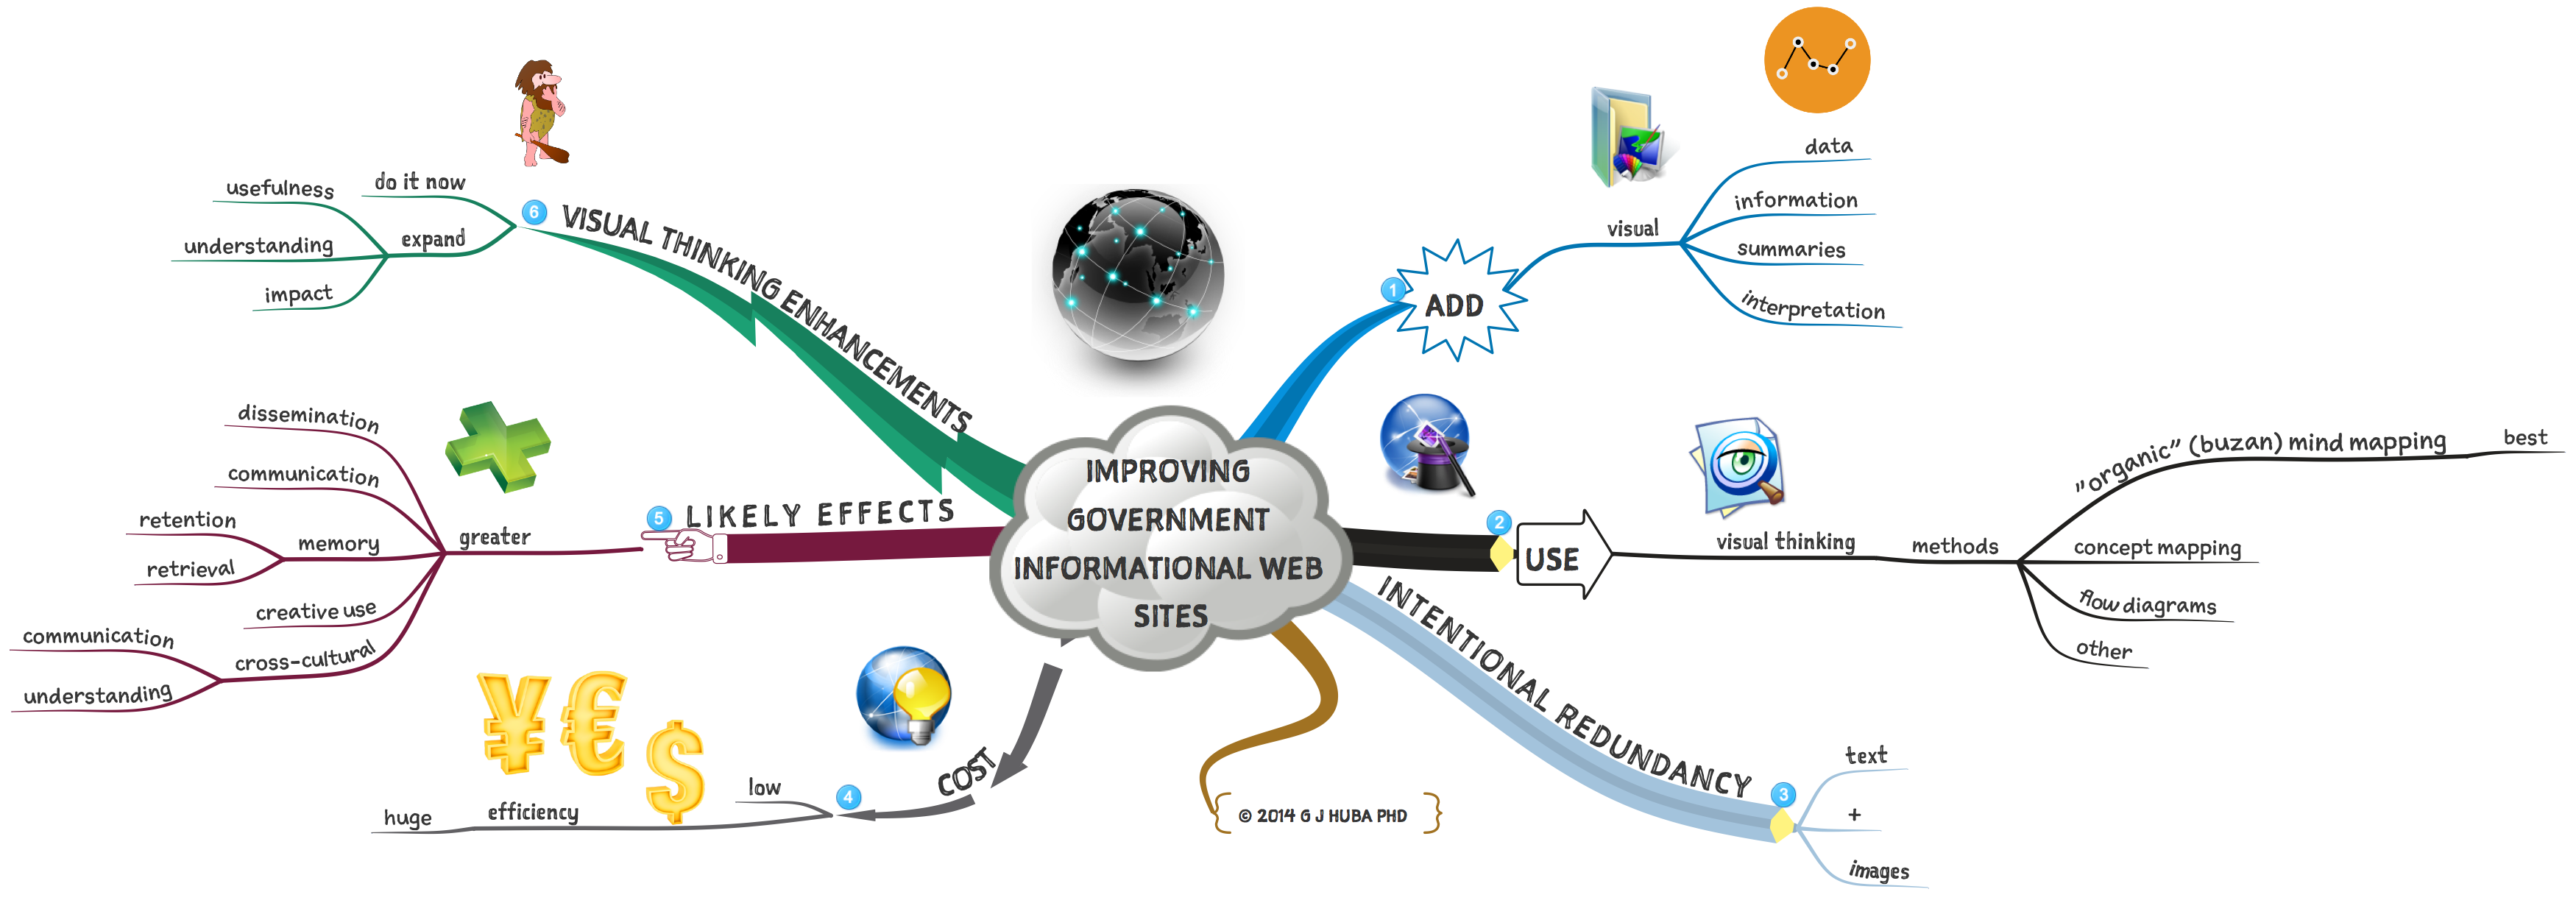 IMPROVING GOVERNMENT INFORMATIONAL WEB SITES